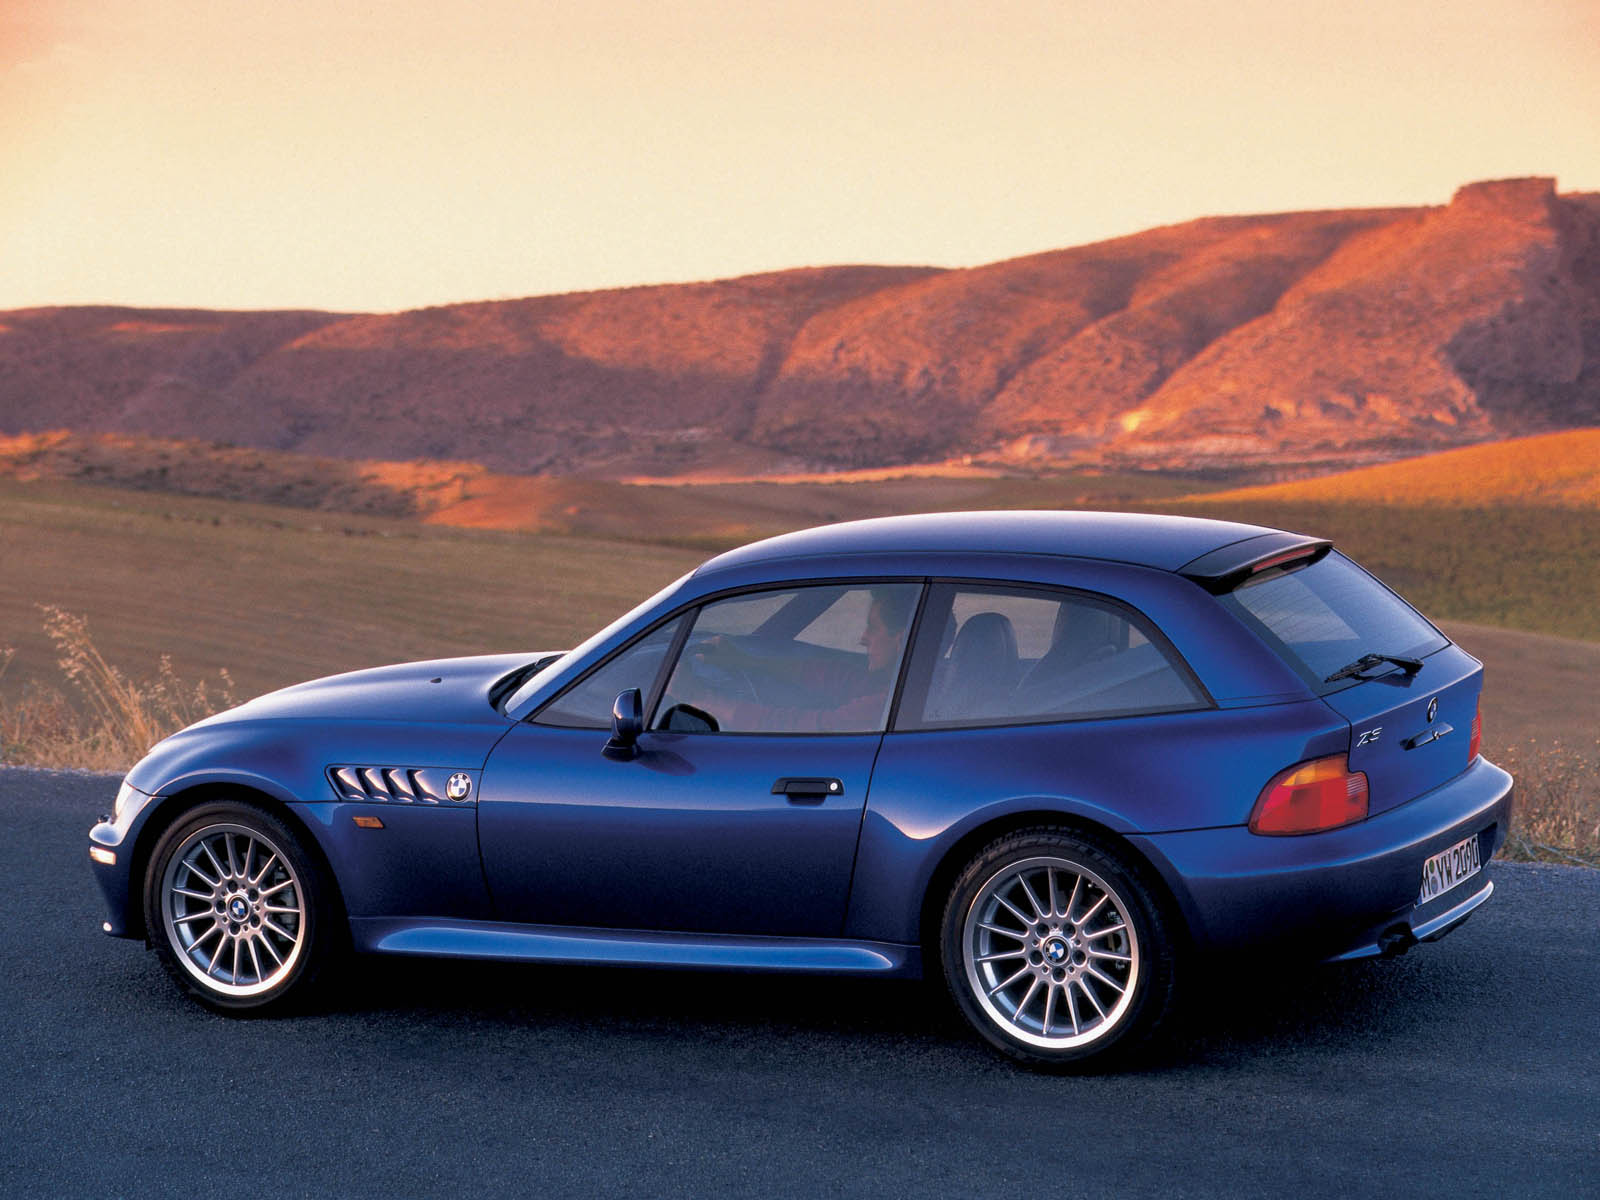 3dtuning Of Bmw Z3 Coupe Coupe 1999 3dtuning Com Unique